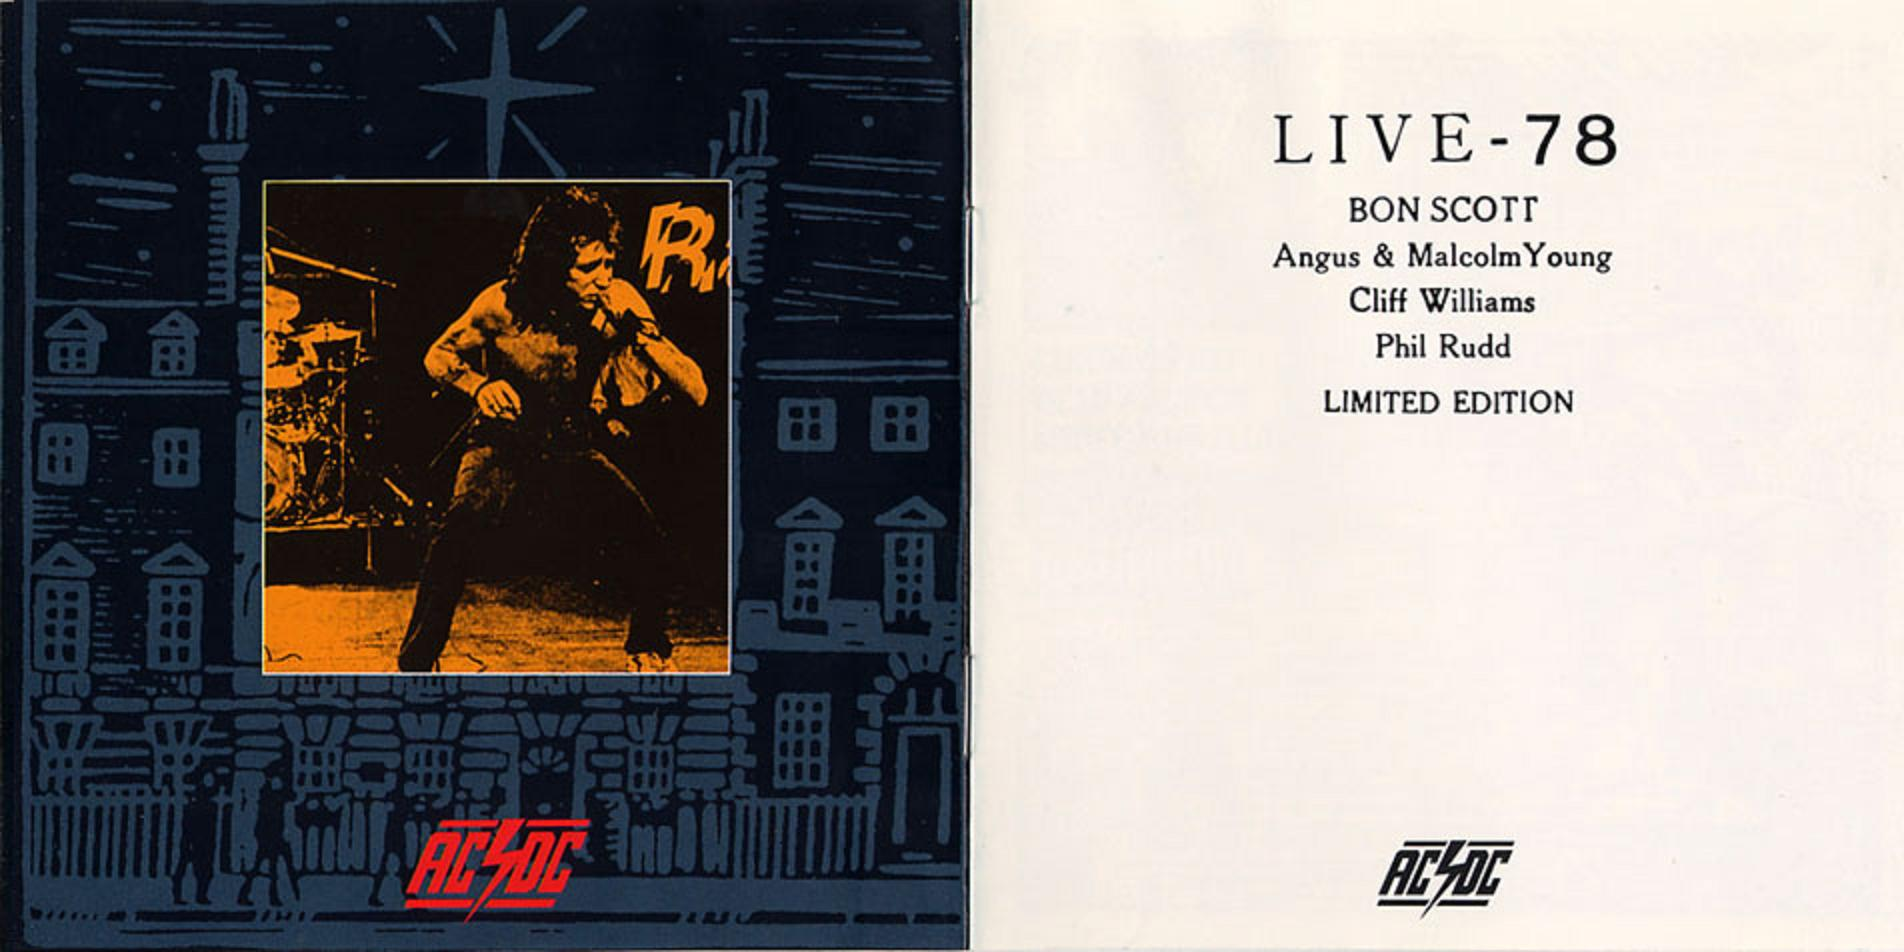 1978-LIVE_78-front